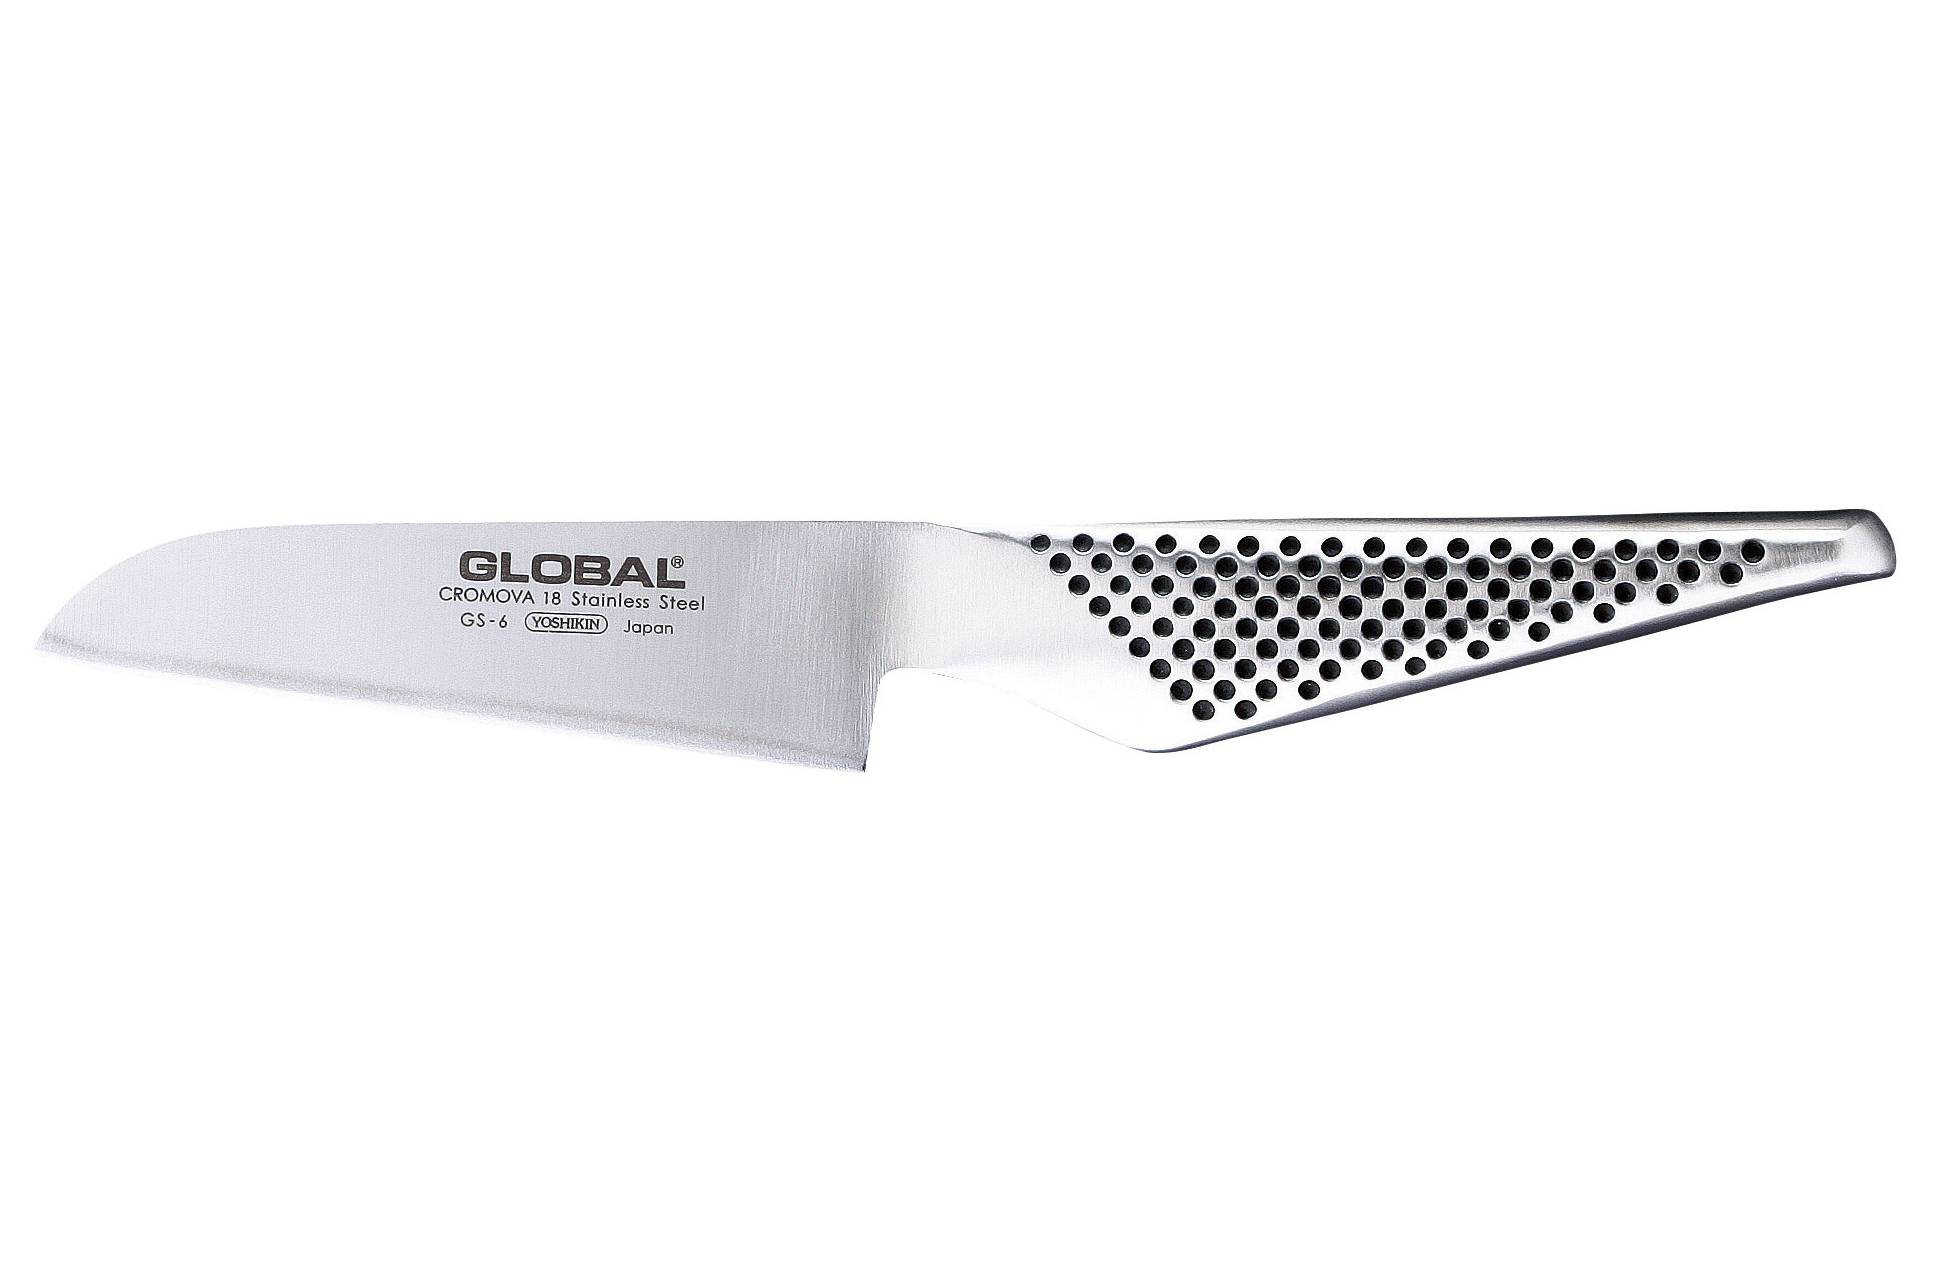 Global GS-6 Paring Knife Straight 10cm